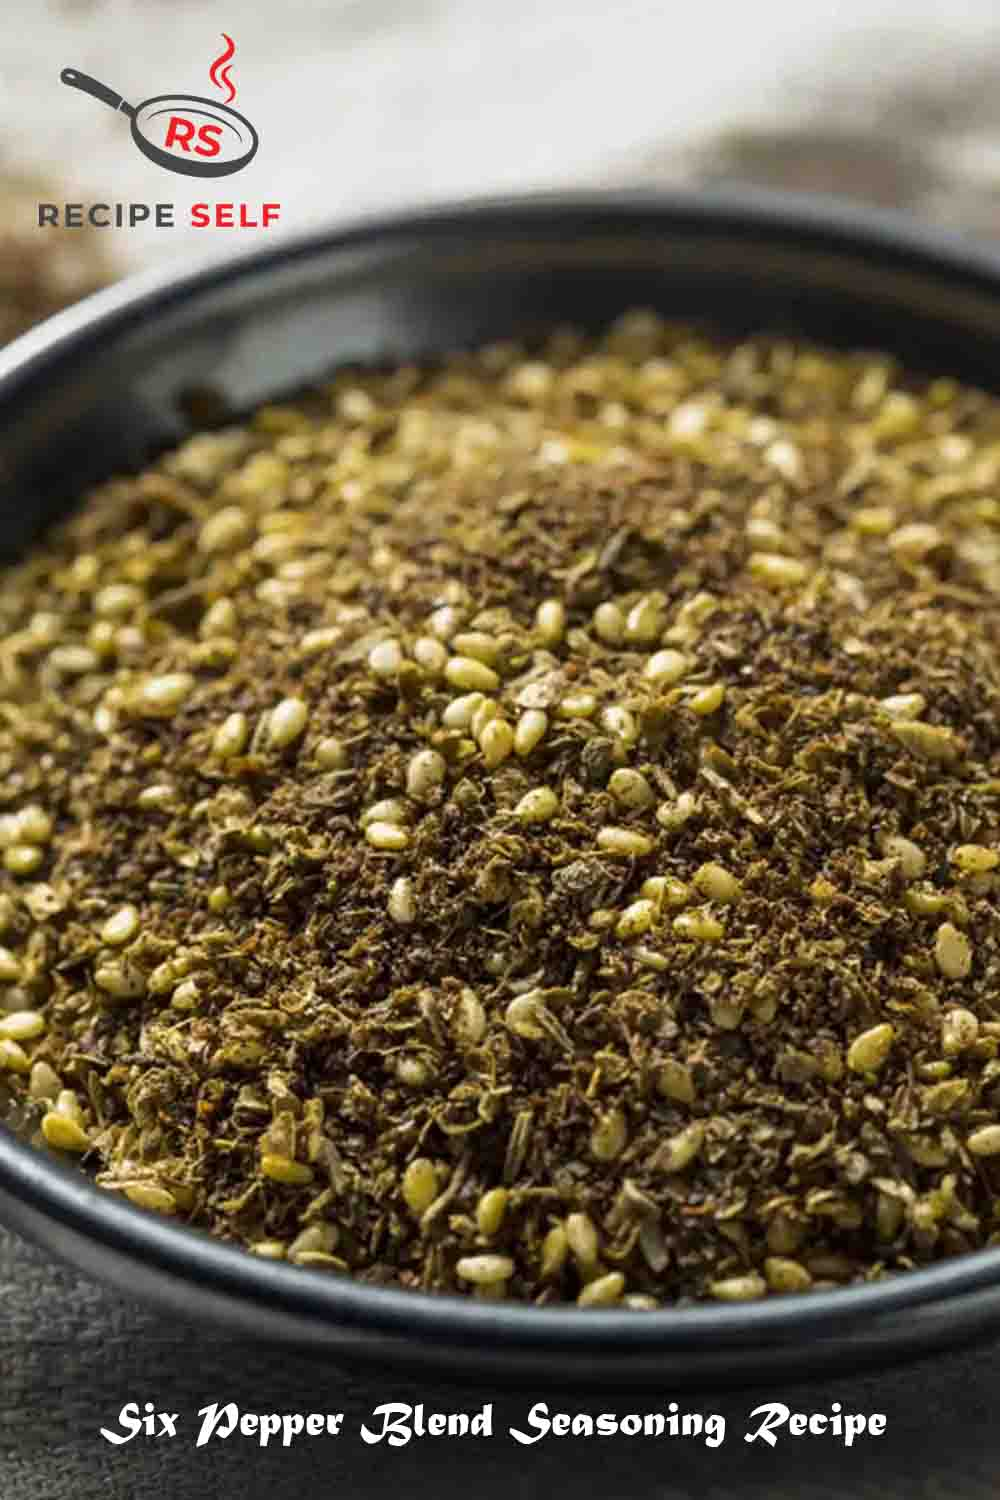 Six Pepper Blend Seasoning Recipe